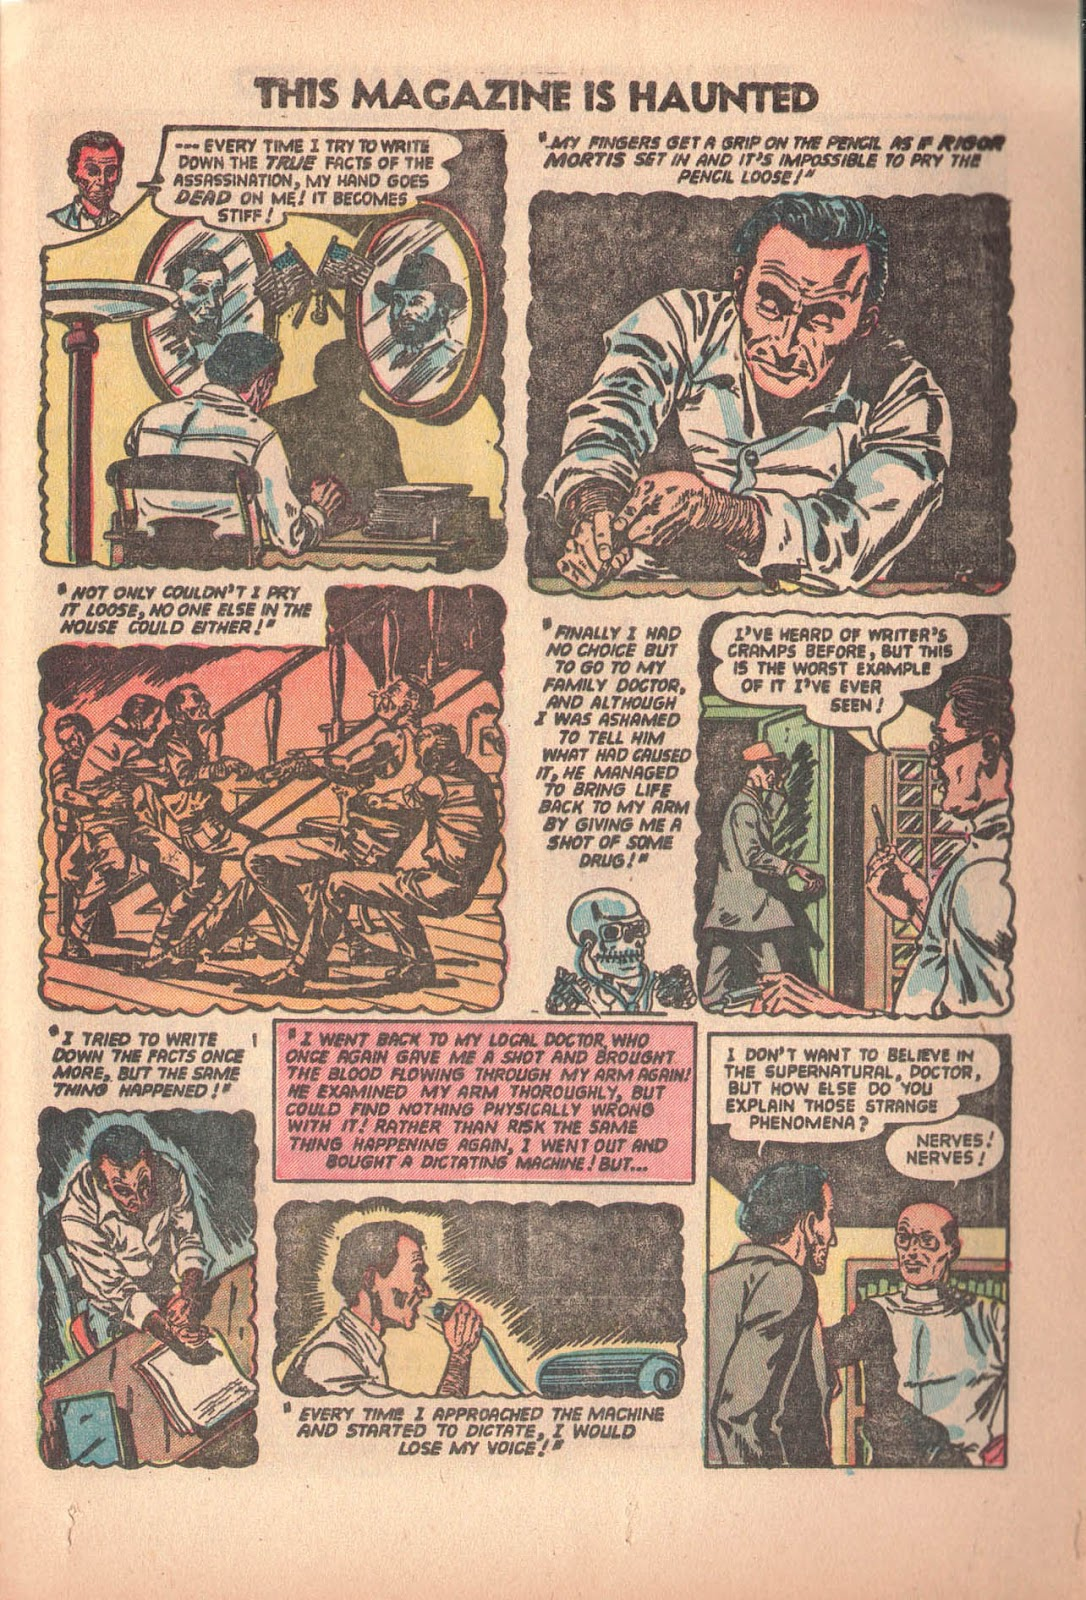 Read online This Magazine Is Haunted comic -  Issue #16 - 25